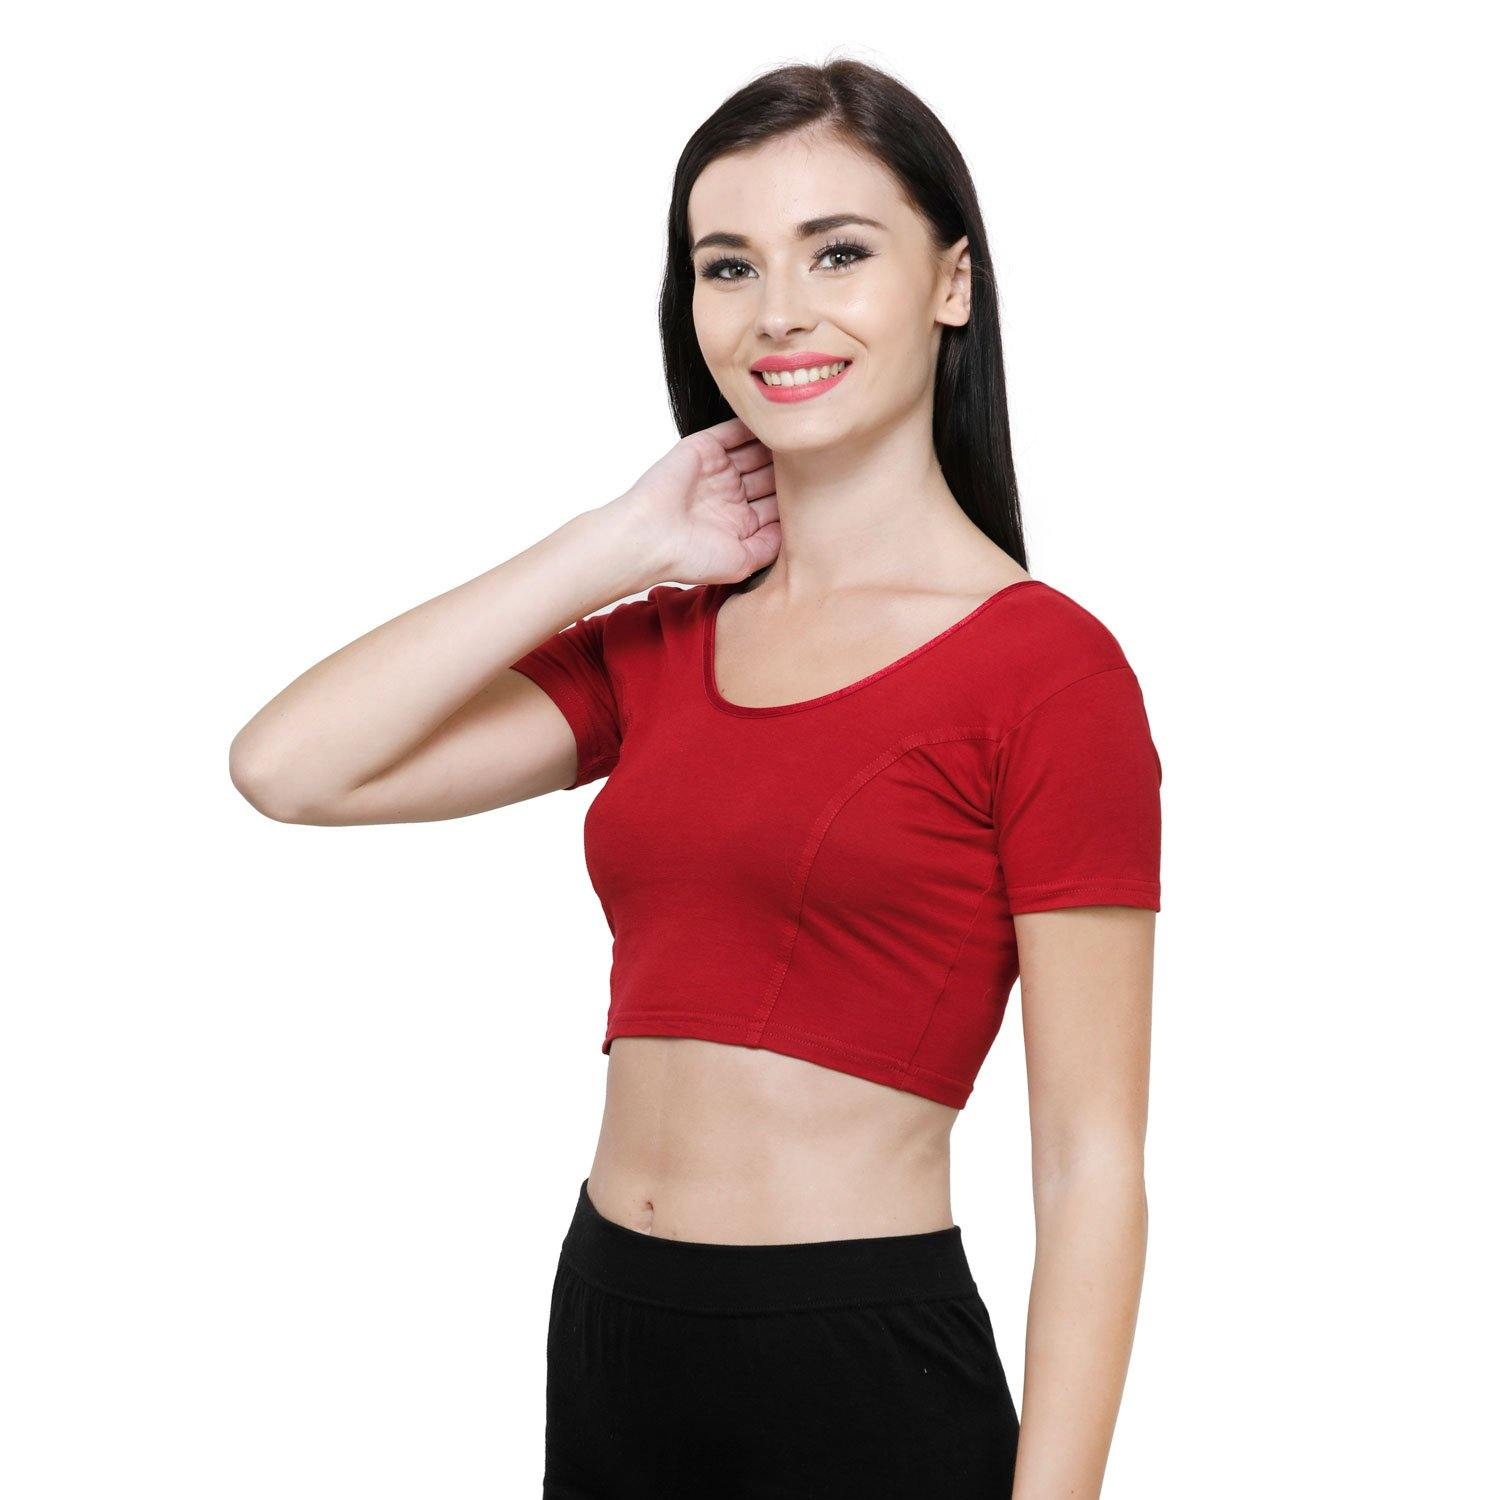 Vami Women's Cotton Stretchable Readymade Blouses -True Red